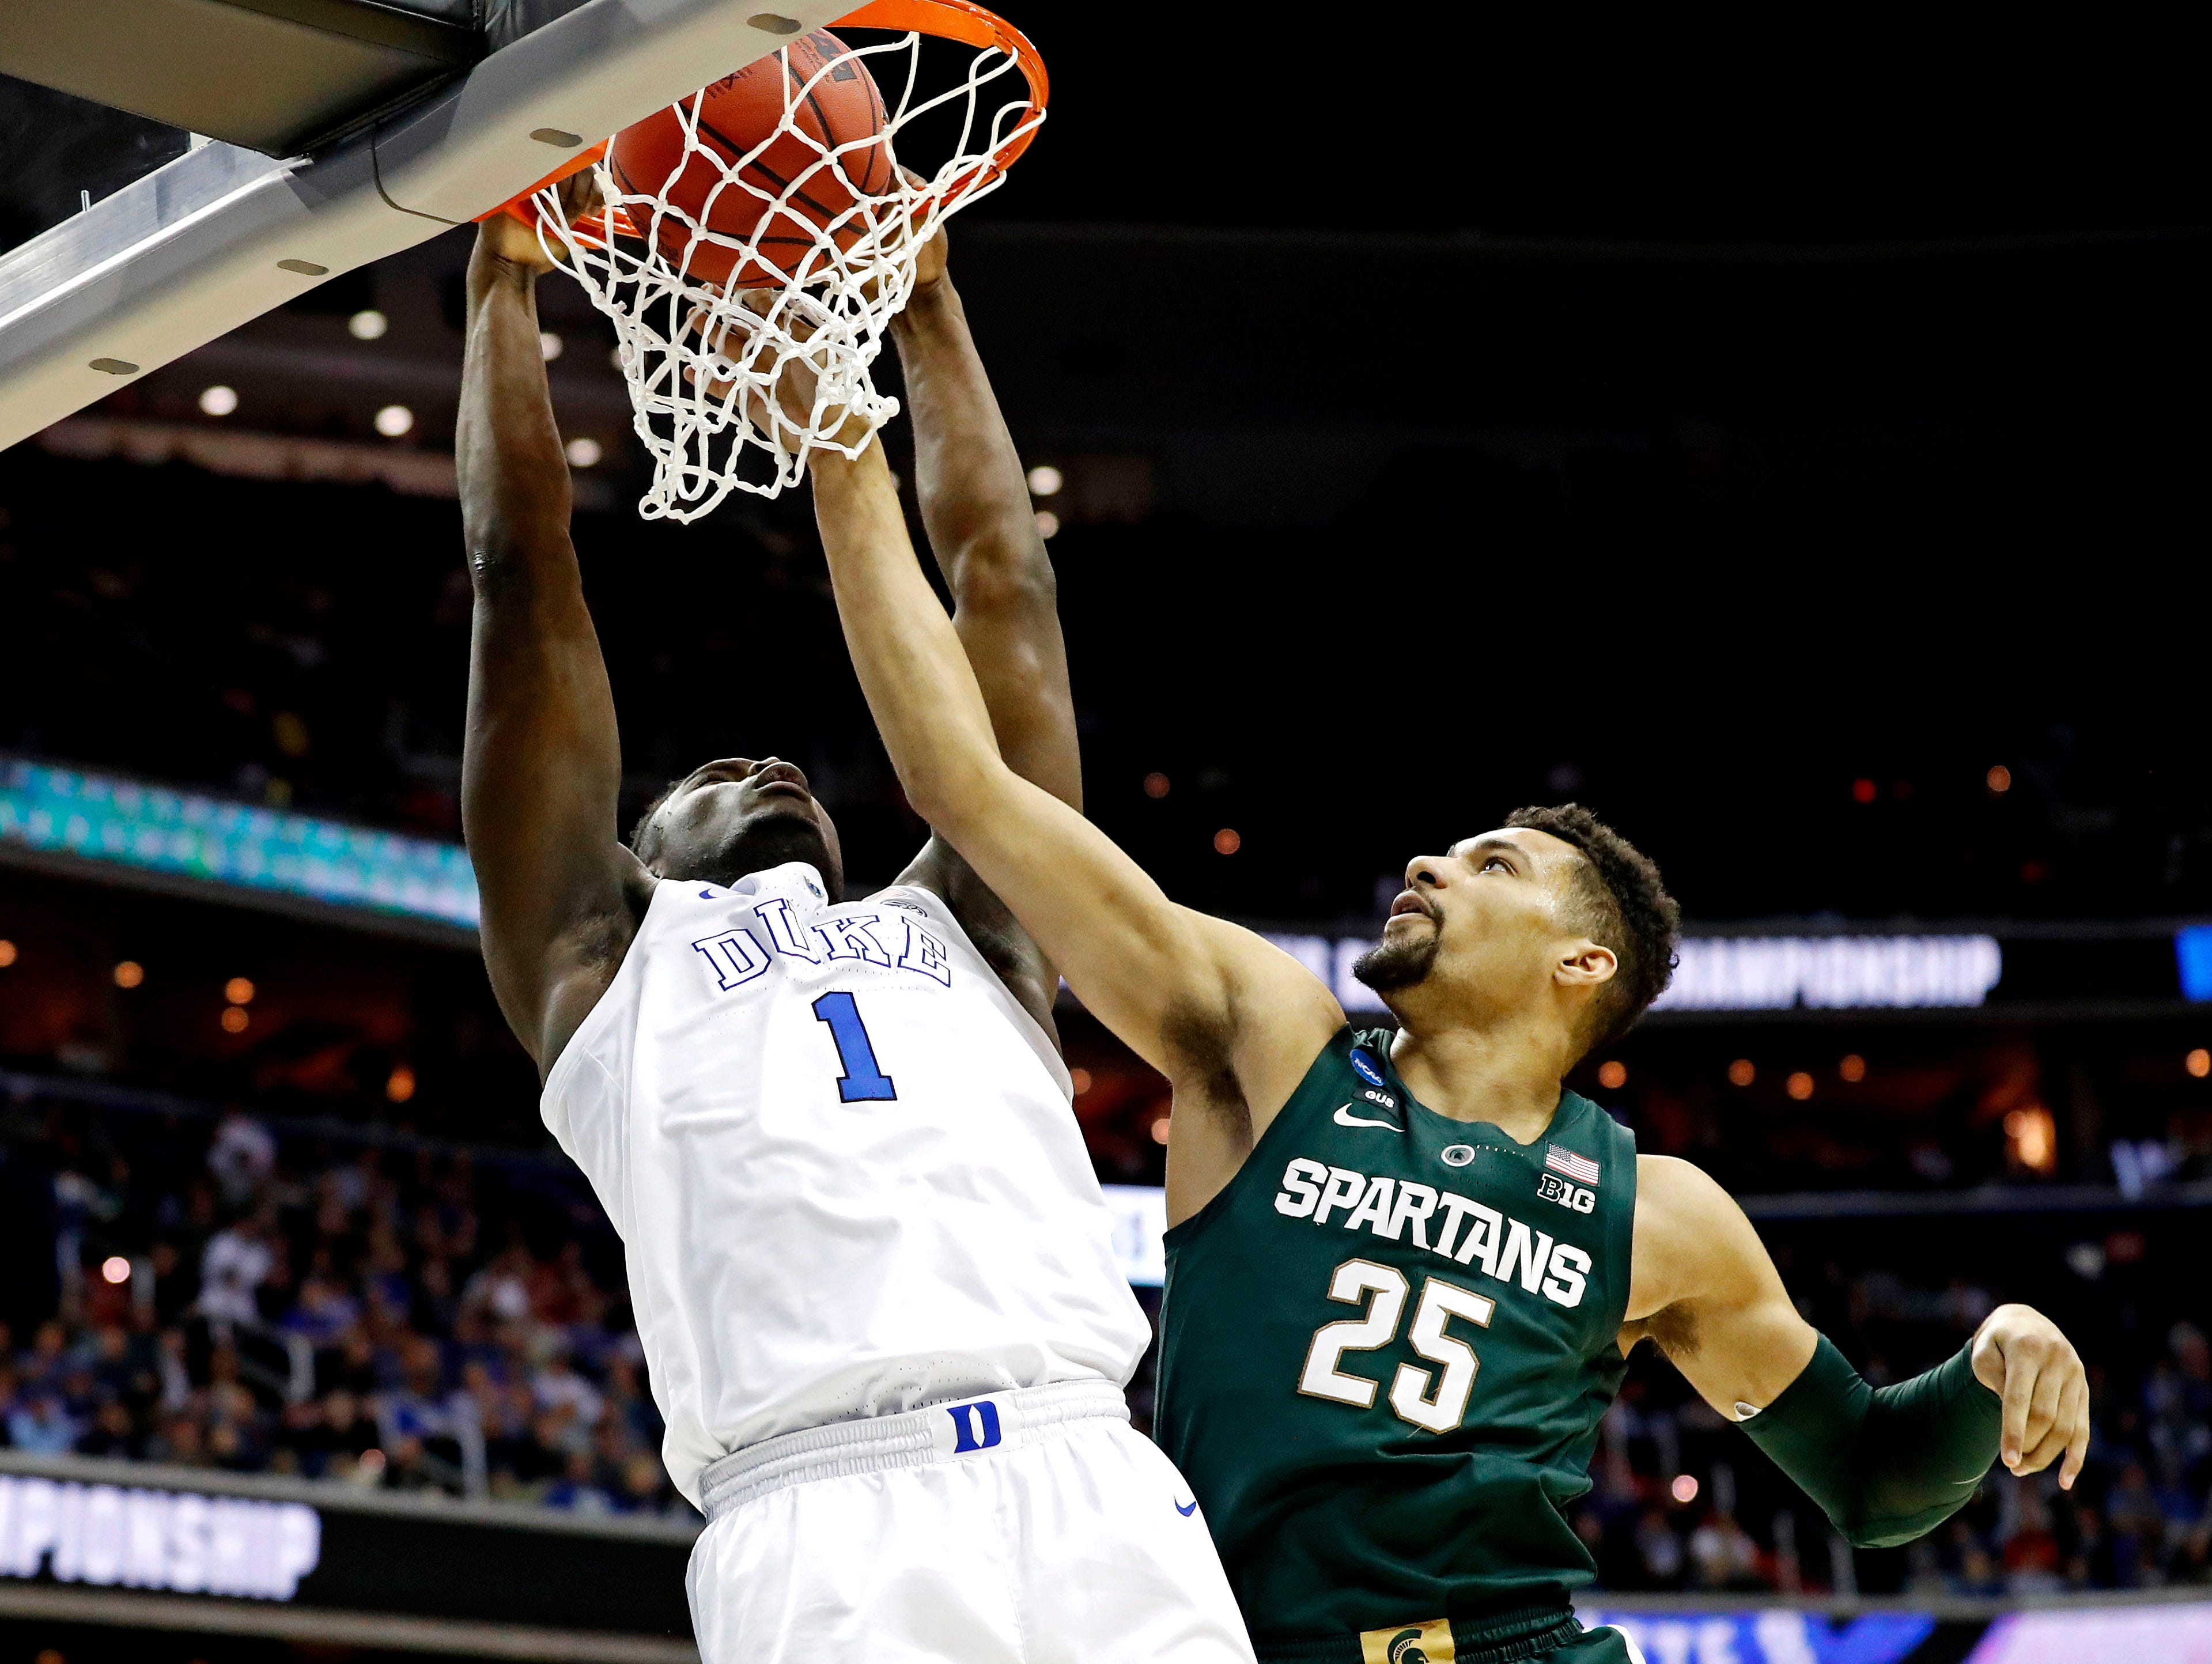 Duke Blue Devils forward Zion Williamson (1) dunks the ball against  in the championship game of the east regional of the 2019 NCAA Tournament at Capital One Arena.